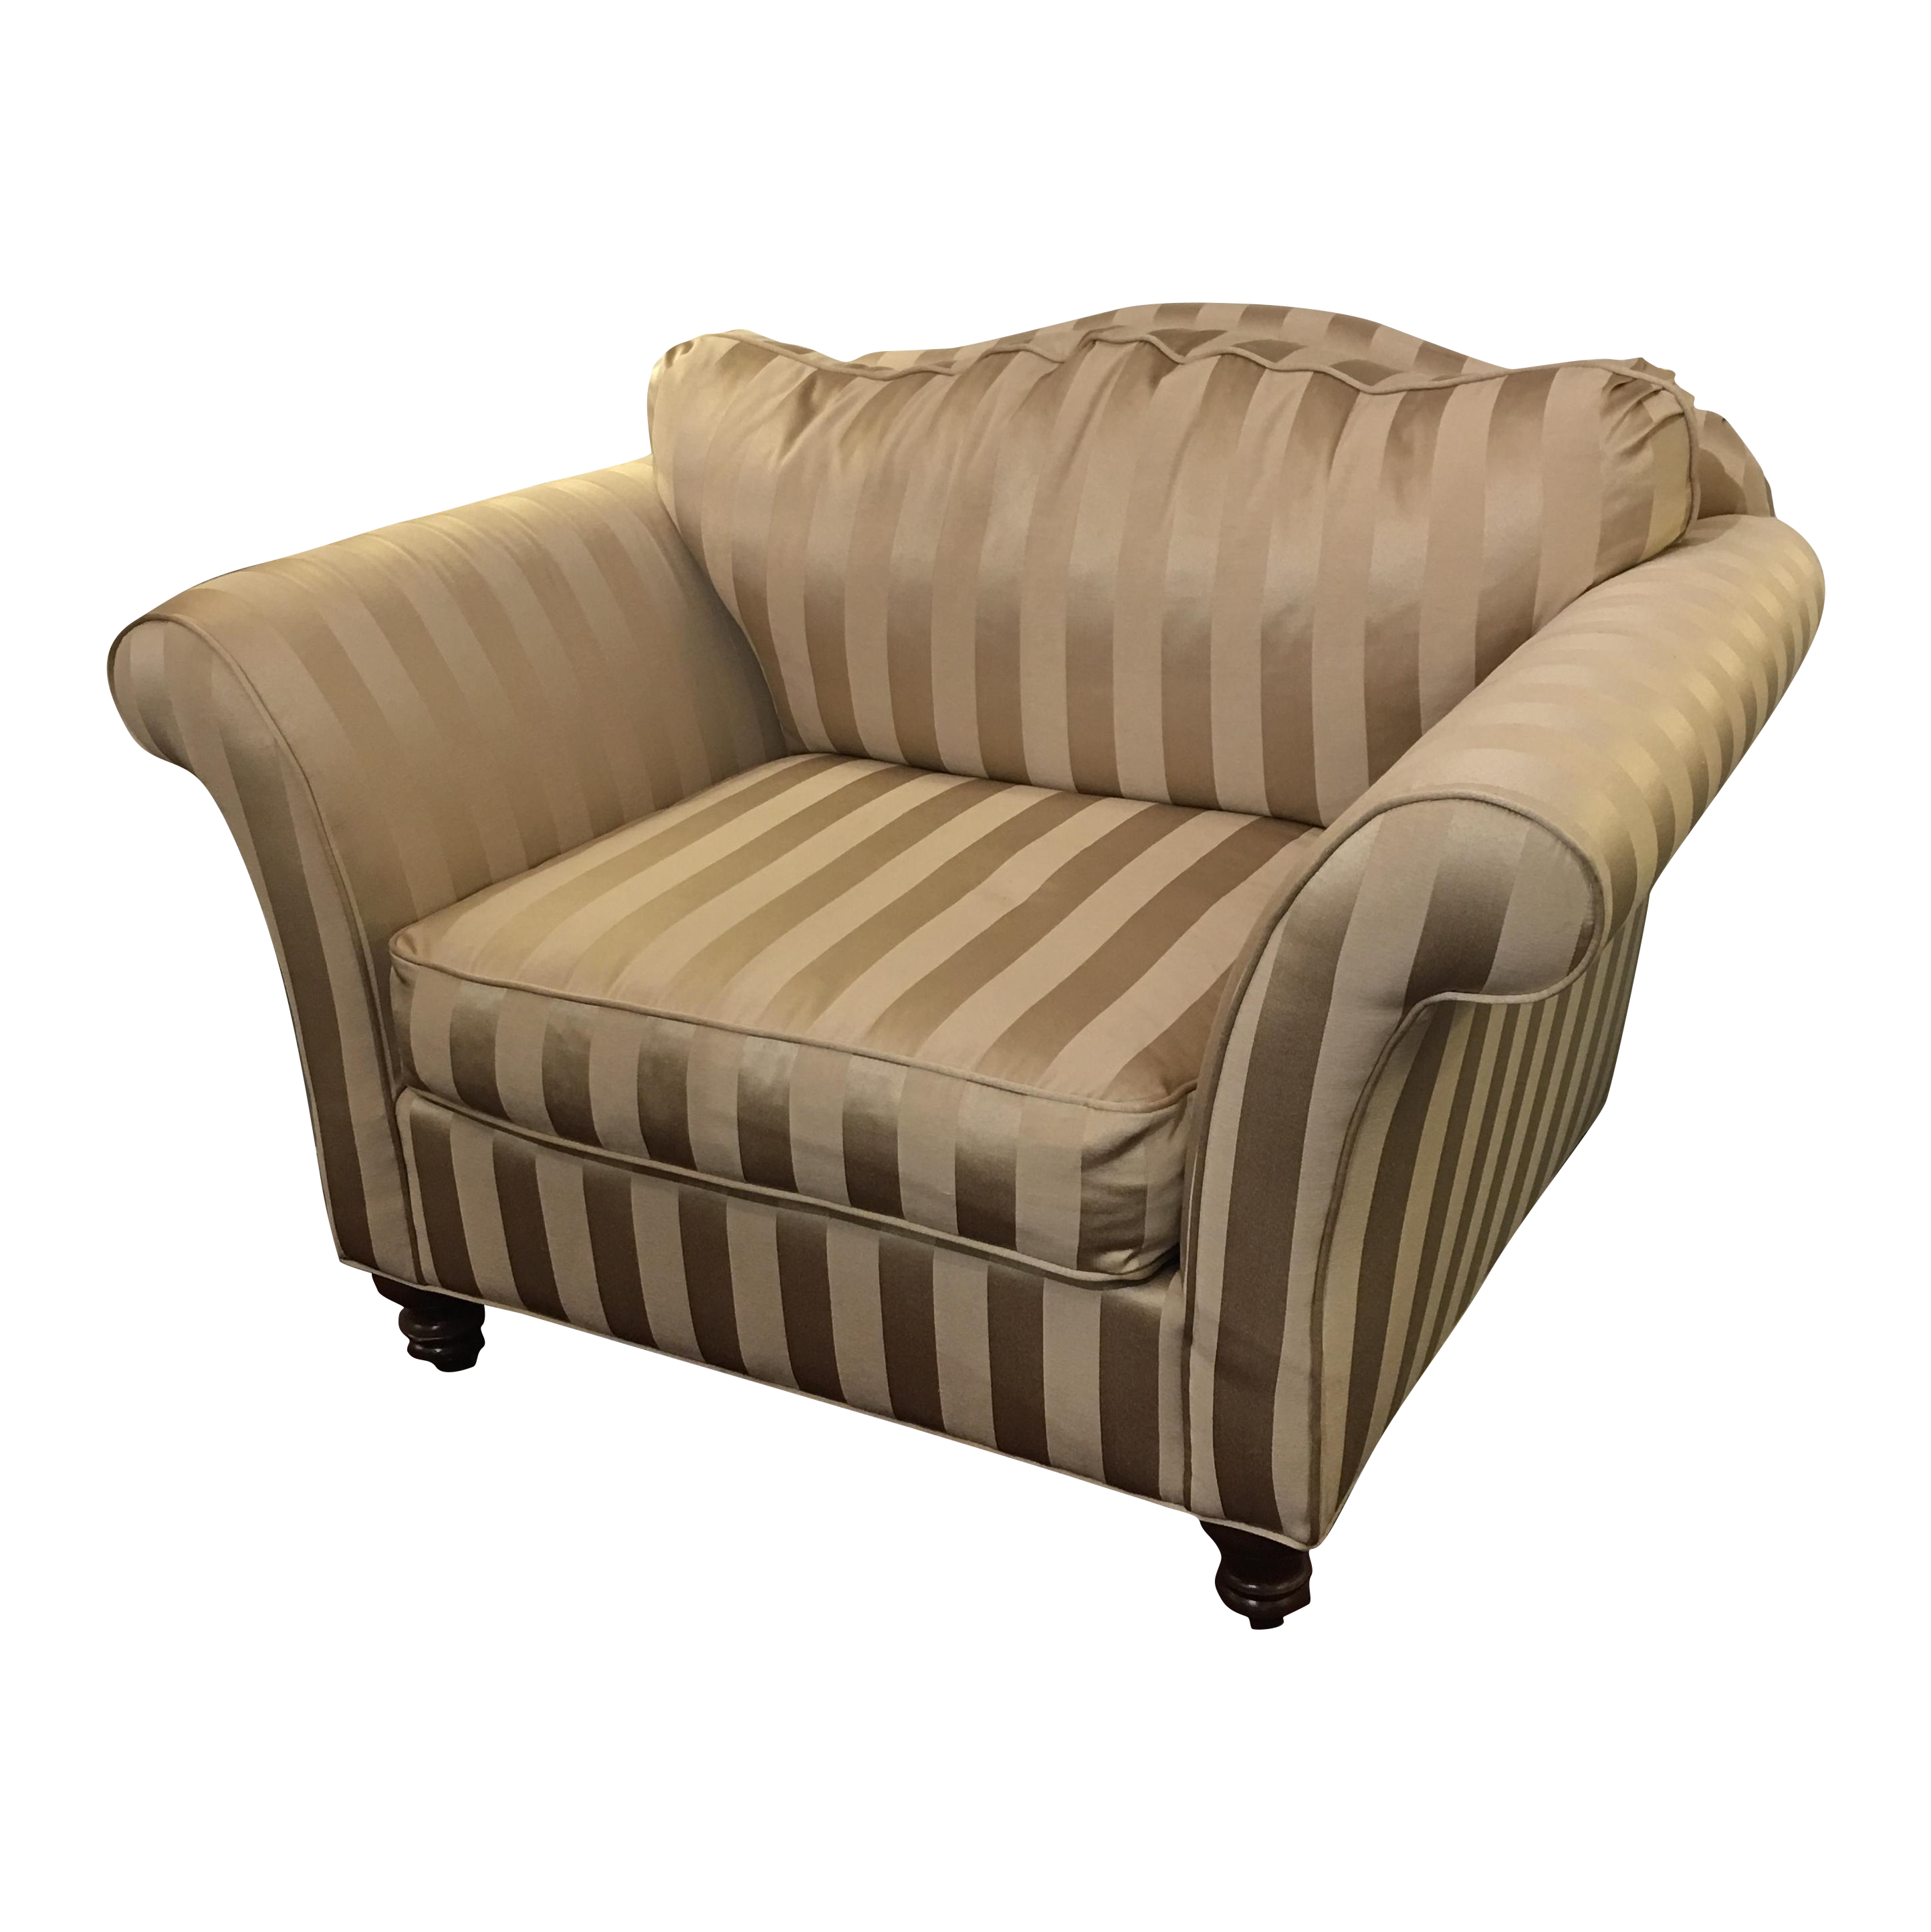 Z Gallerie Upholstered Striped Cream Chair Chairish